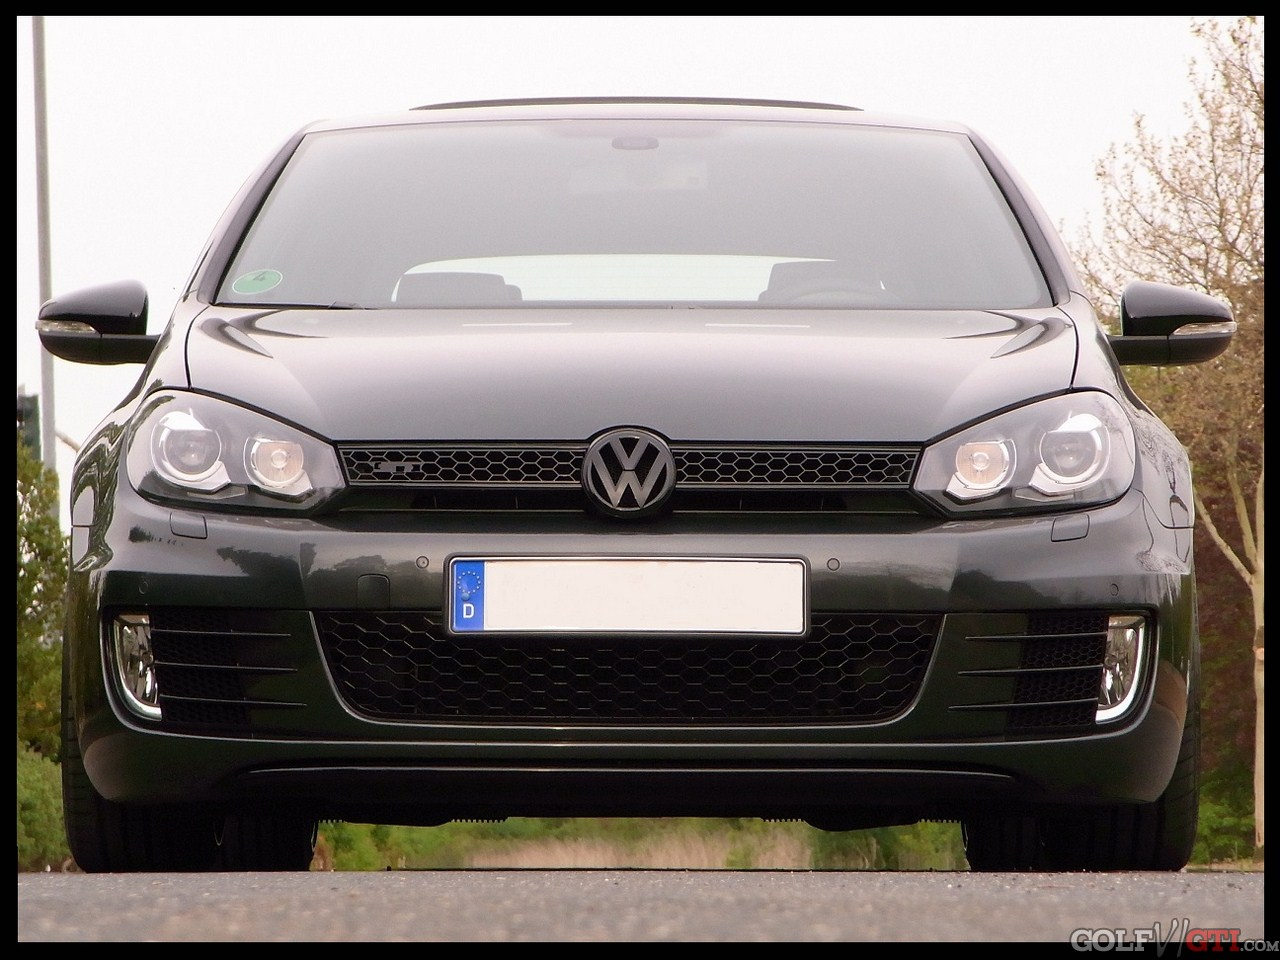 vw emblem front u heck in anderer farbe golf vi gti community forum. Black Bedroom Furniture Sets. Home Design Ideas